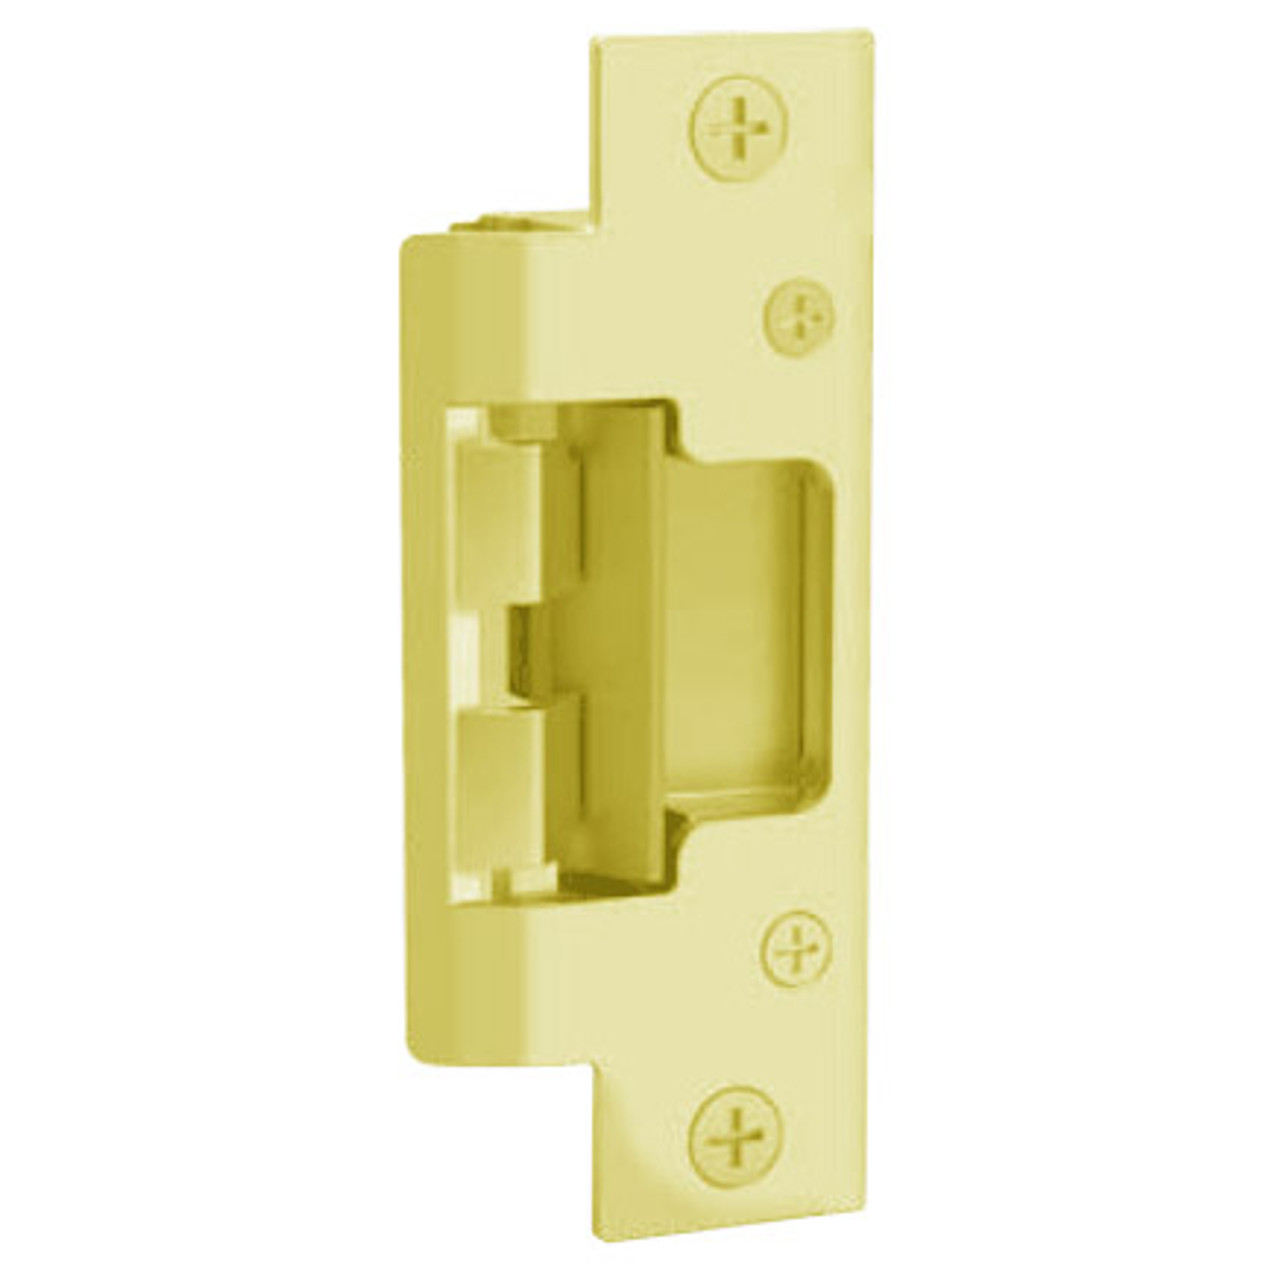 """802-605 Hes 7-15/16 x 1-7/16"""" Faceplate in Bright Brass Finish"""